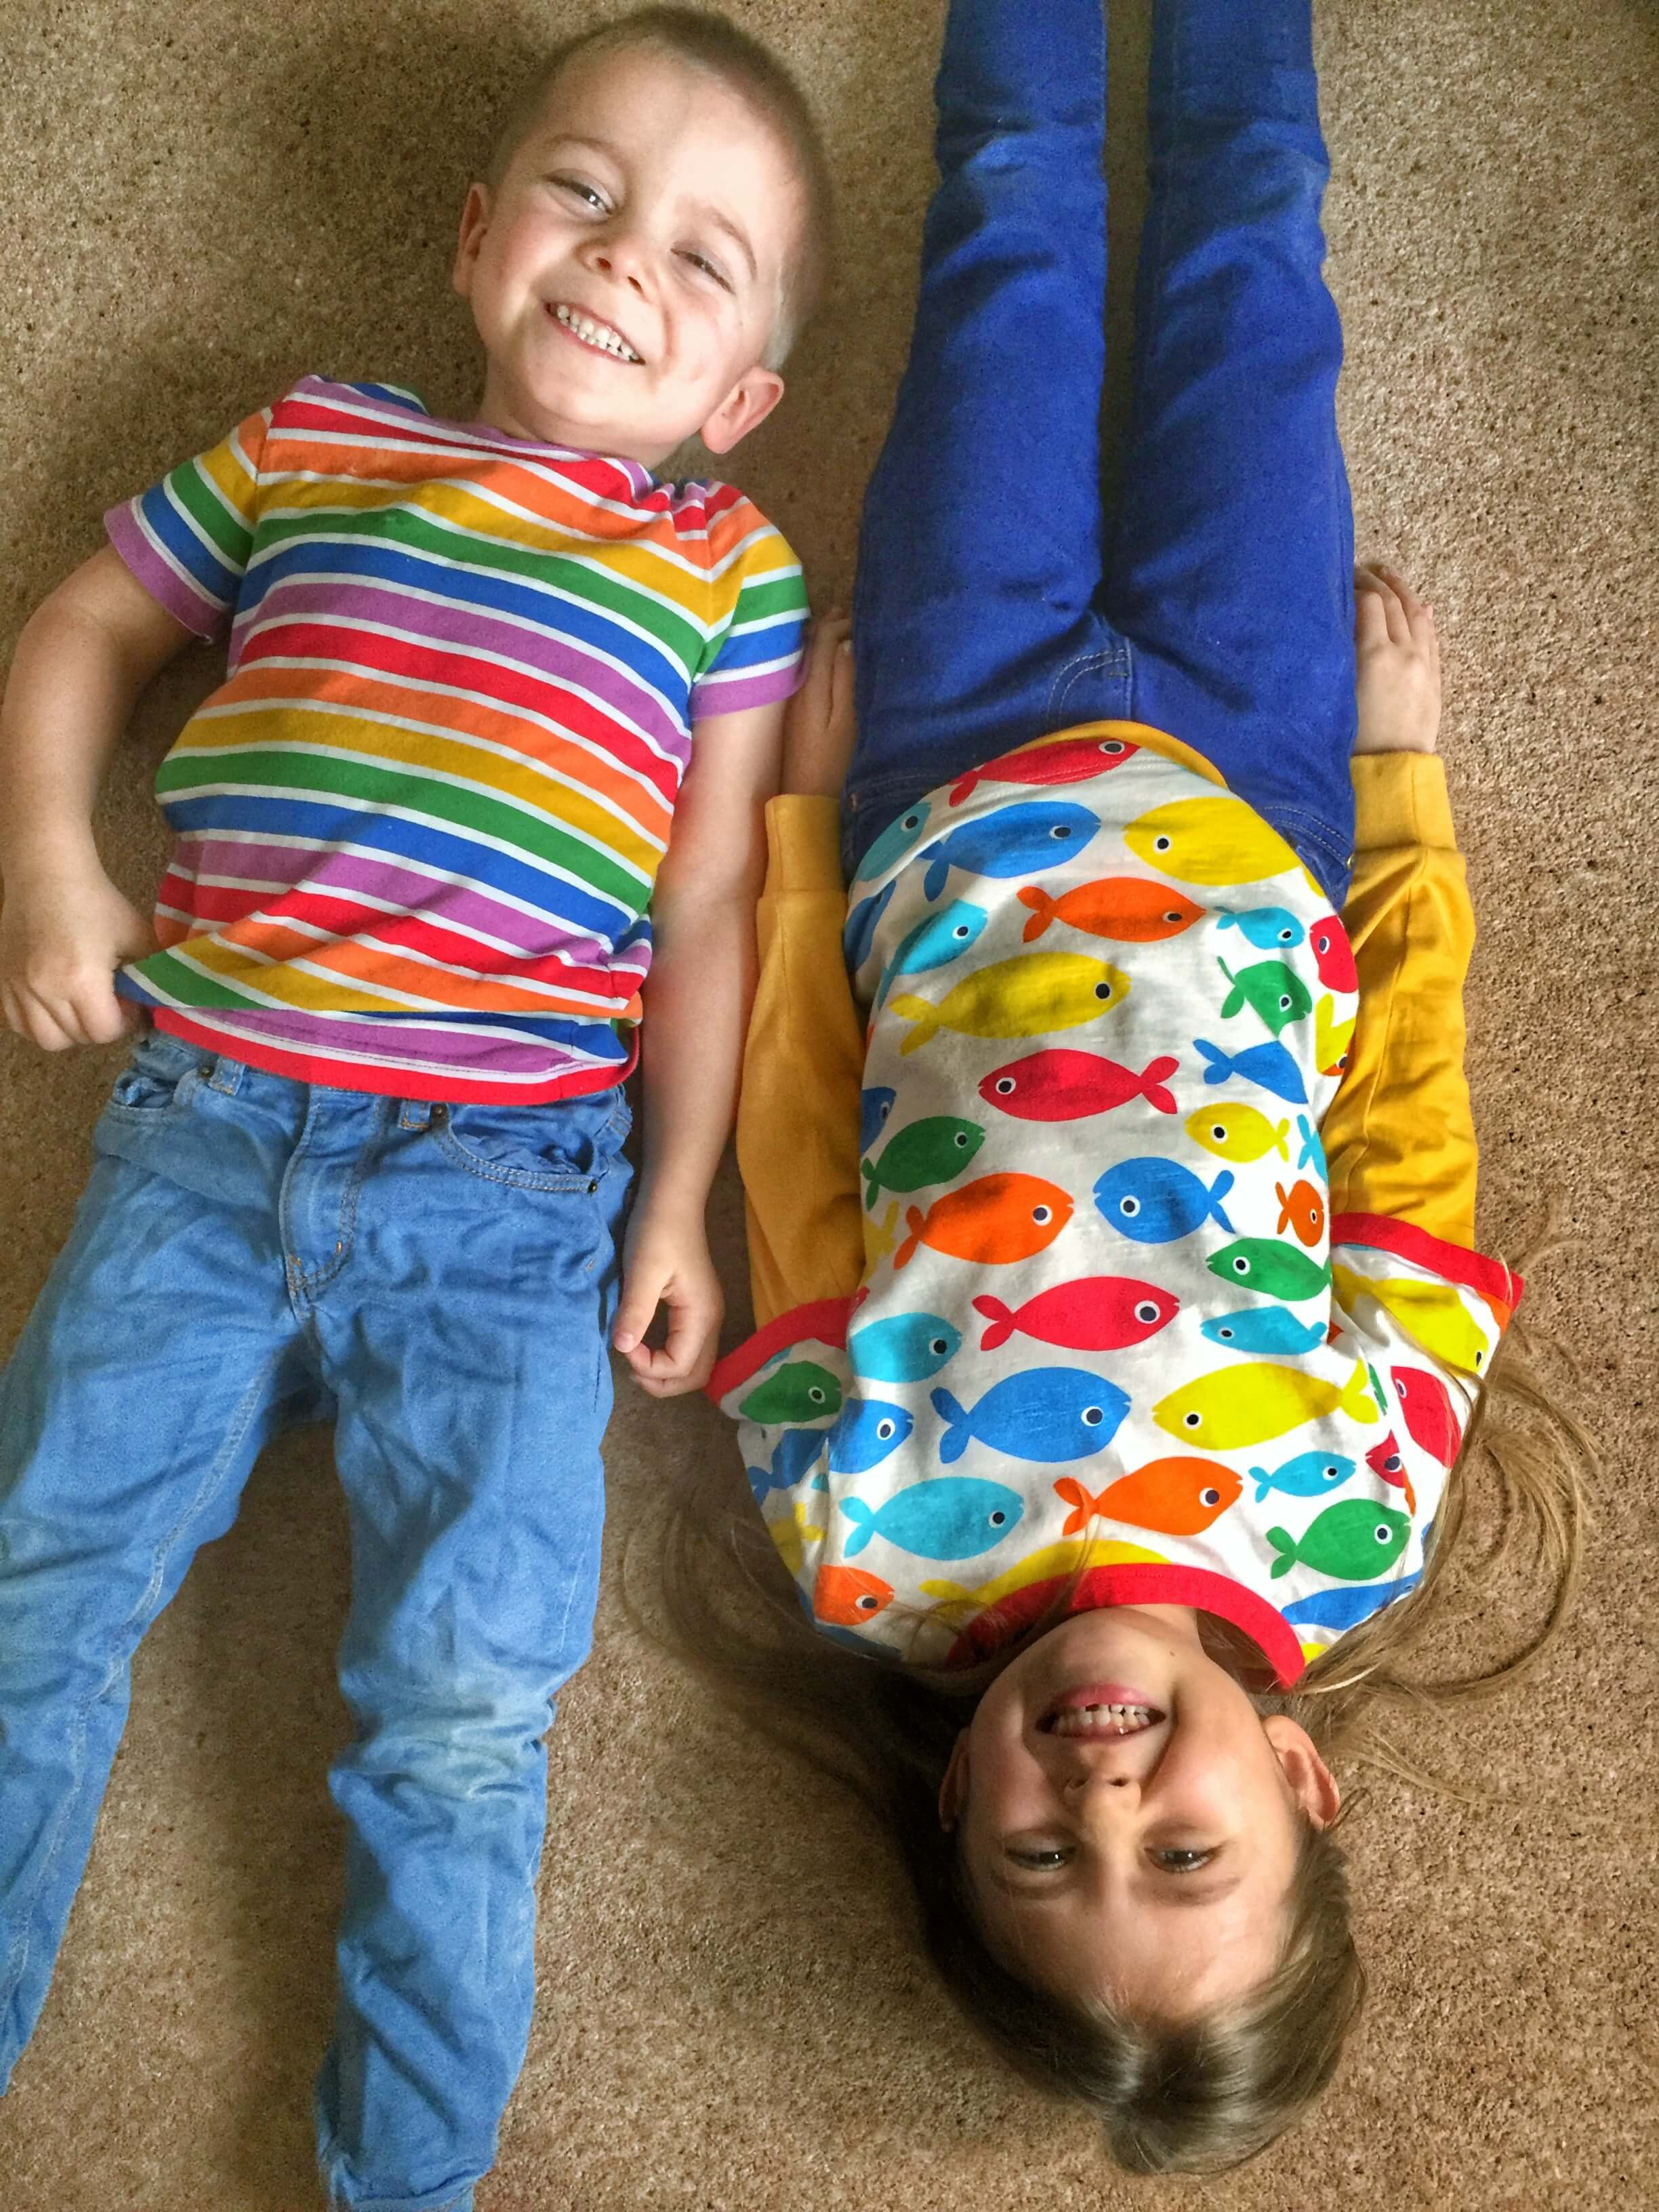 holly and jack's style boy and girl in bright tops ad jeans